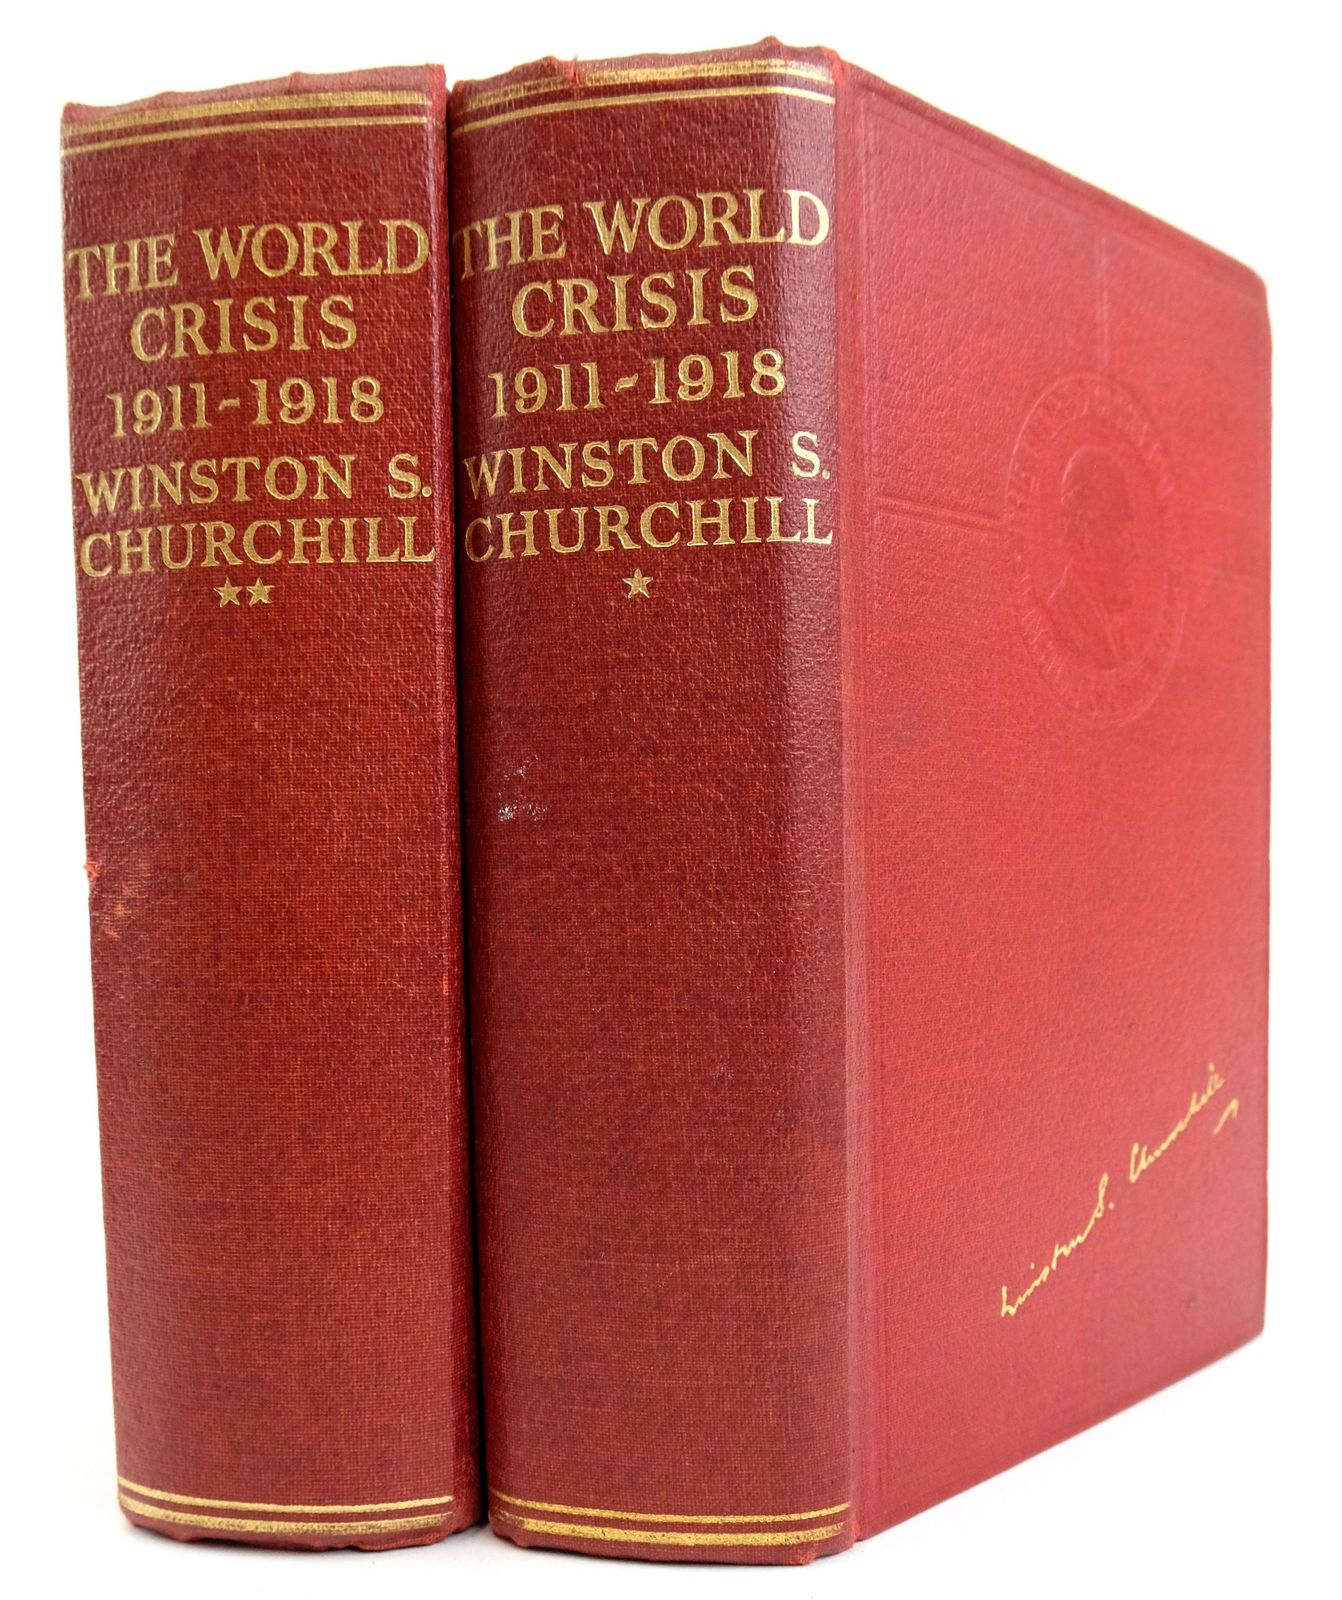 Photo of THE WORLD CRISIS 1911-1918 (2 VOLUMES) written by Churchill, Winston S. published by Odhams Press (STOCK CODE: 1819525)  for sale by Stella & Rose's Books